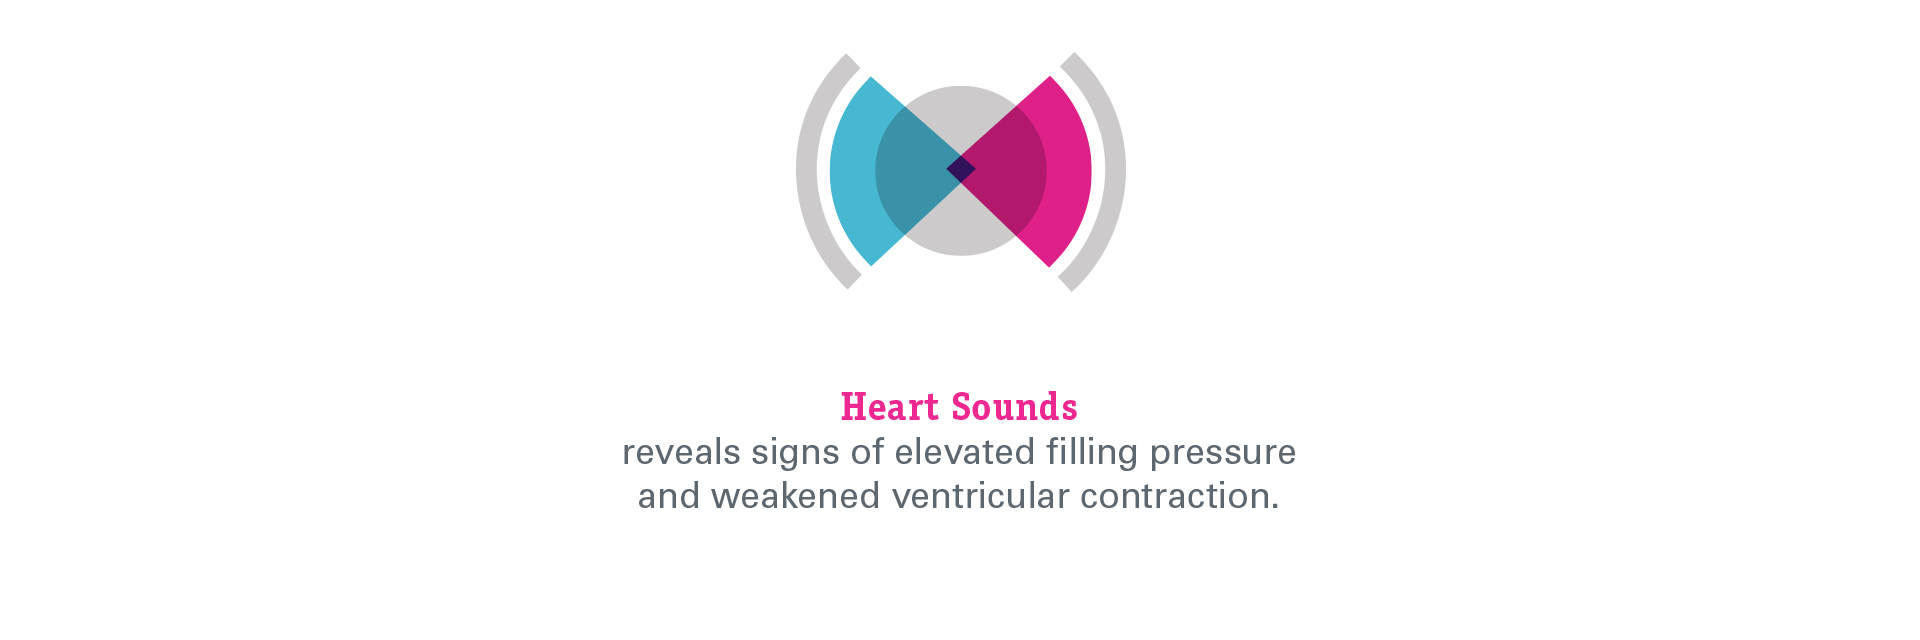 Heart Sounds icon